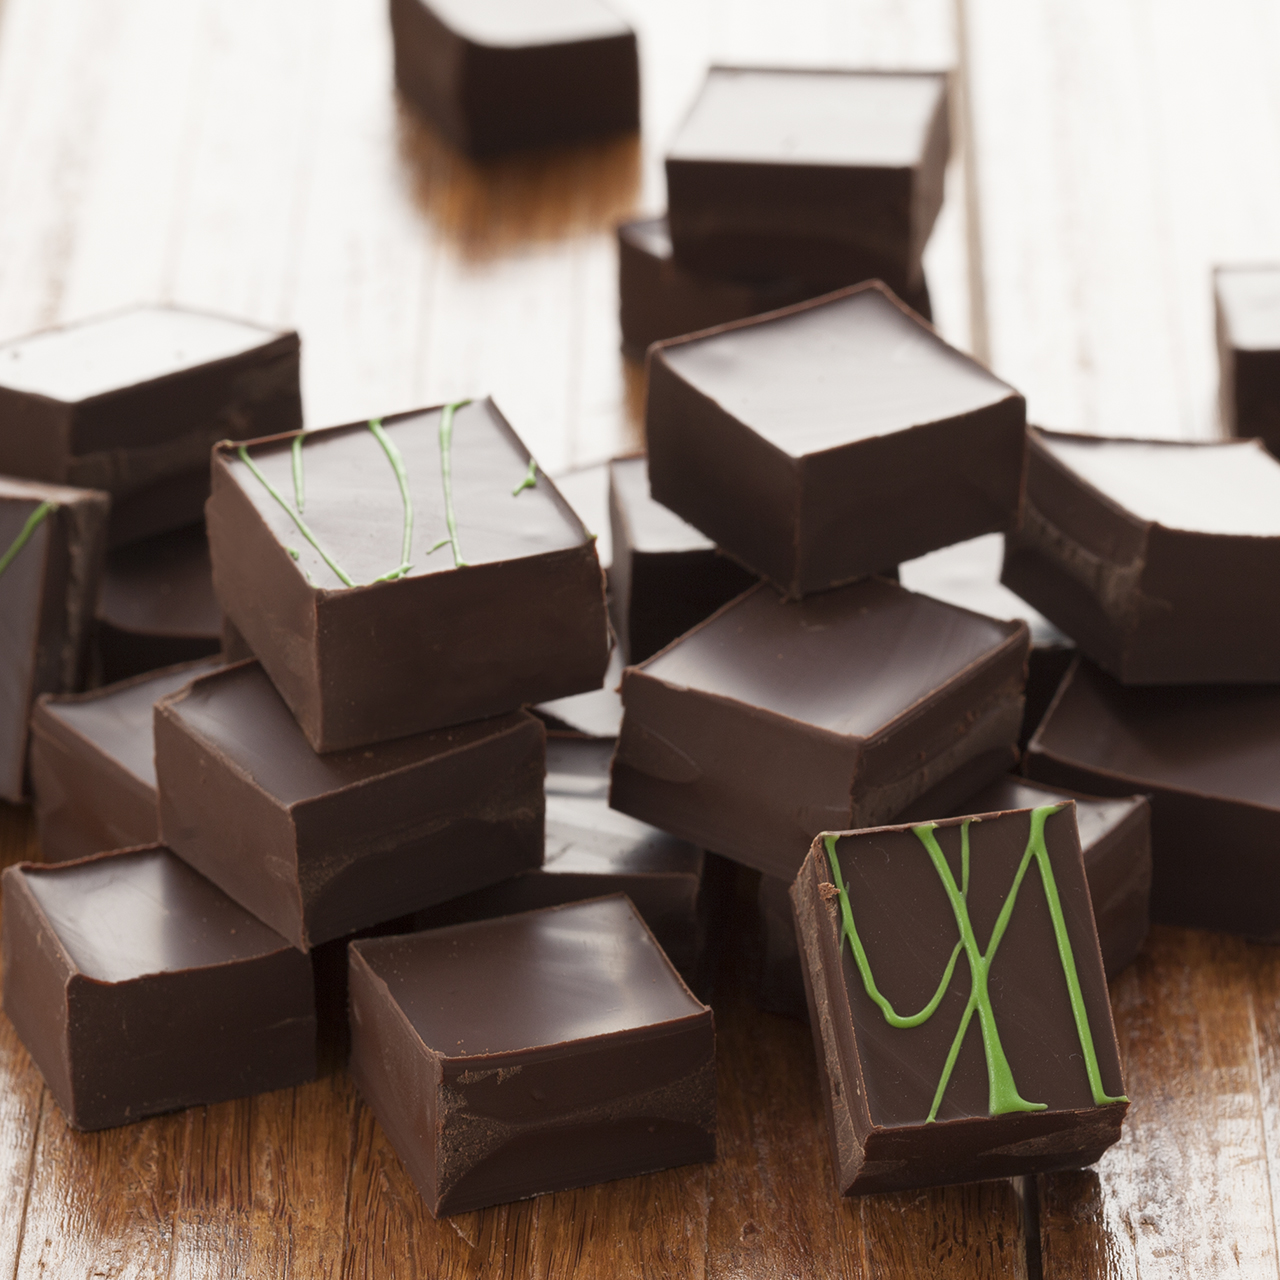 Meltaways in Dark Chocolate ­- 1 lb